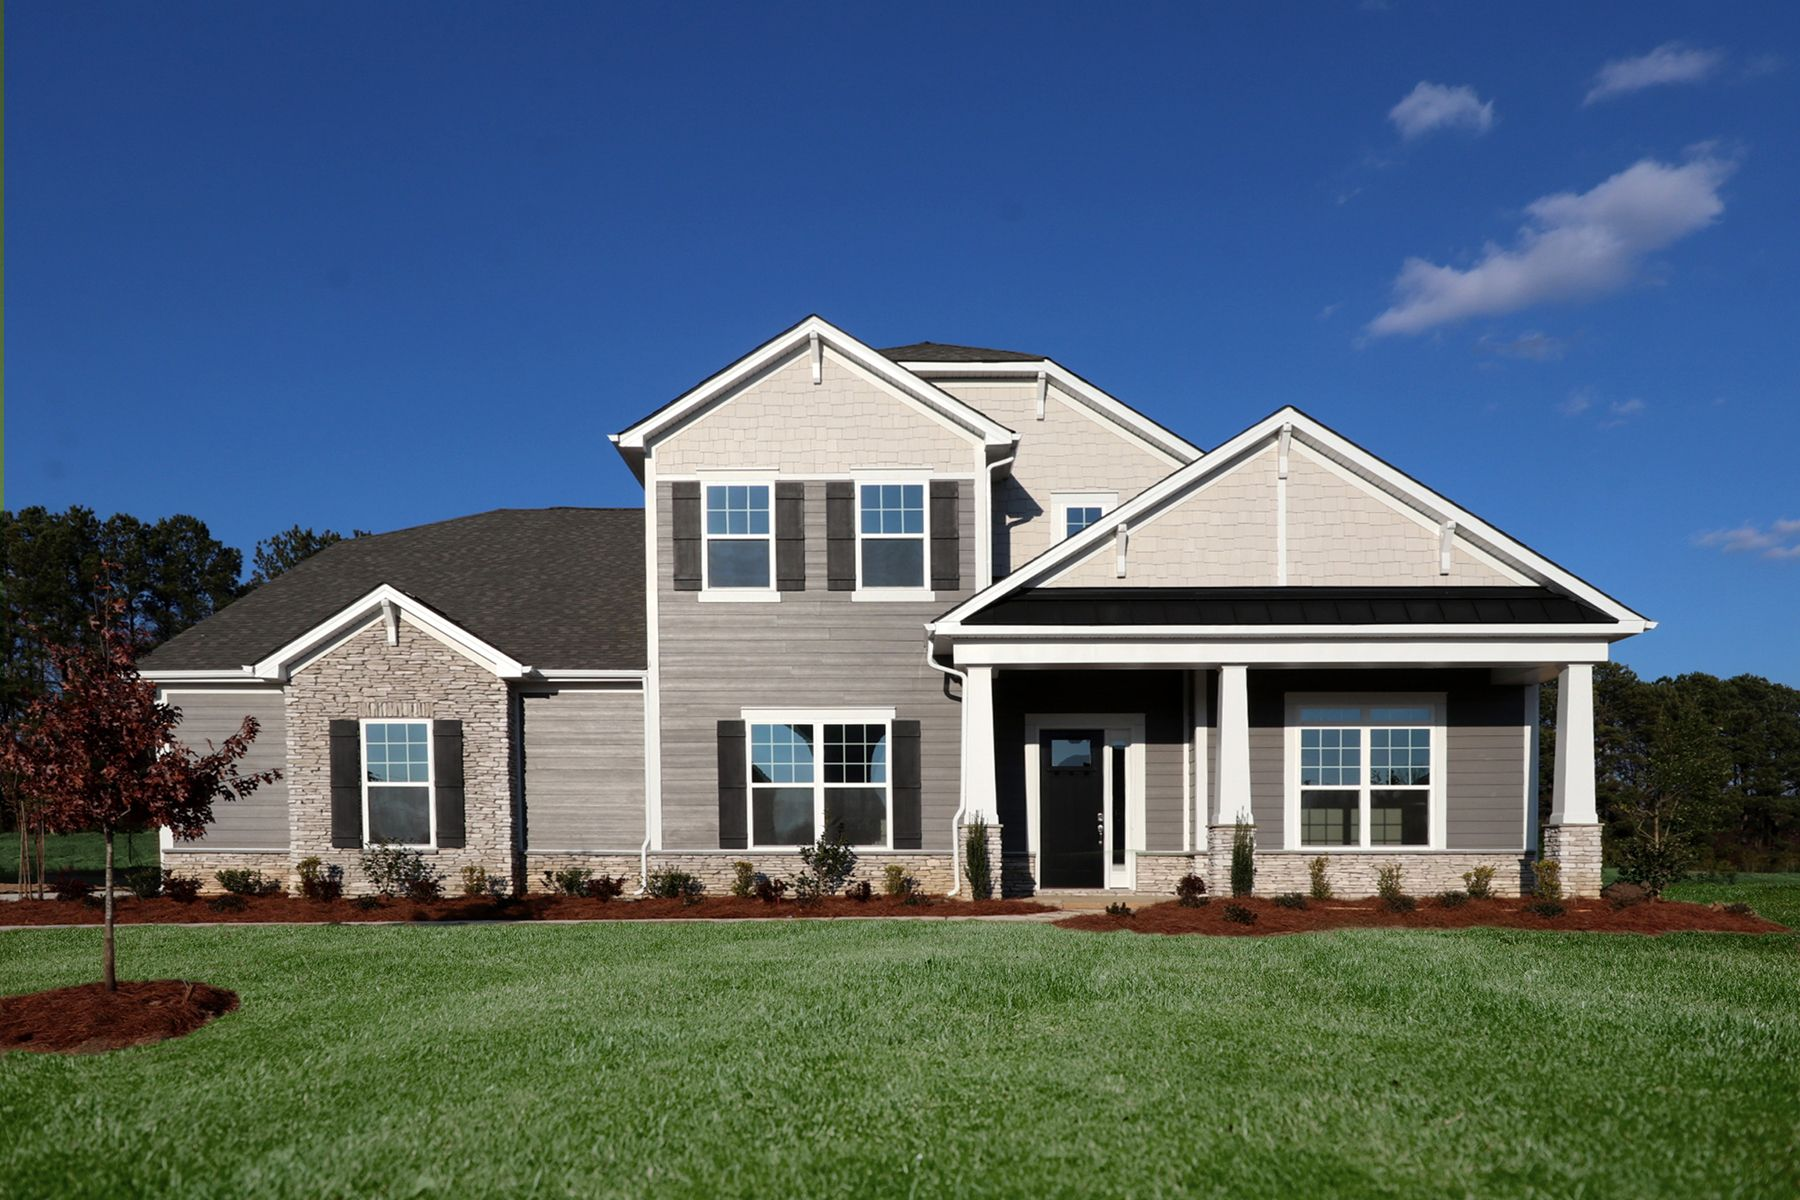 Single Family for Active at Blythe 2138 Loire Valley Drive Indian Land, South Carolina 29707 United States